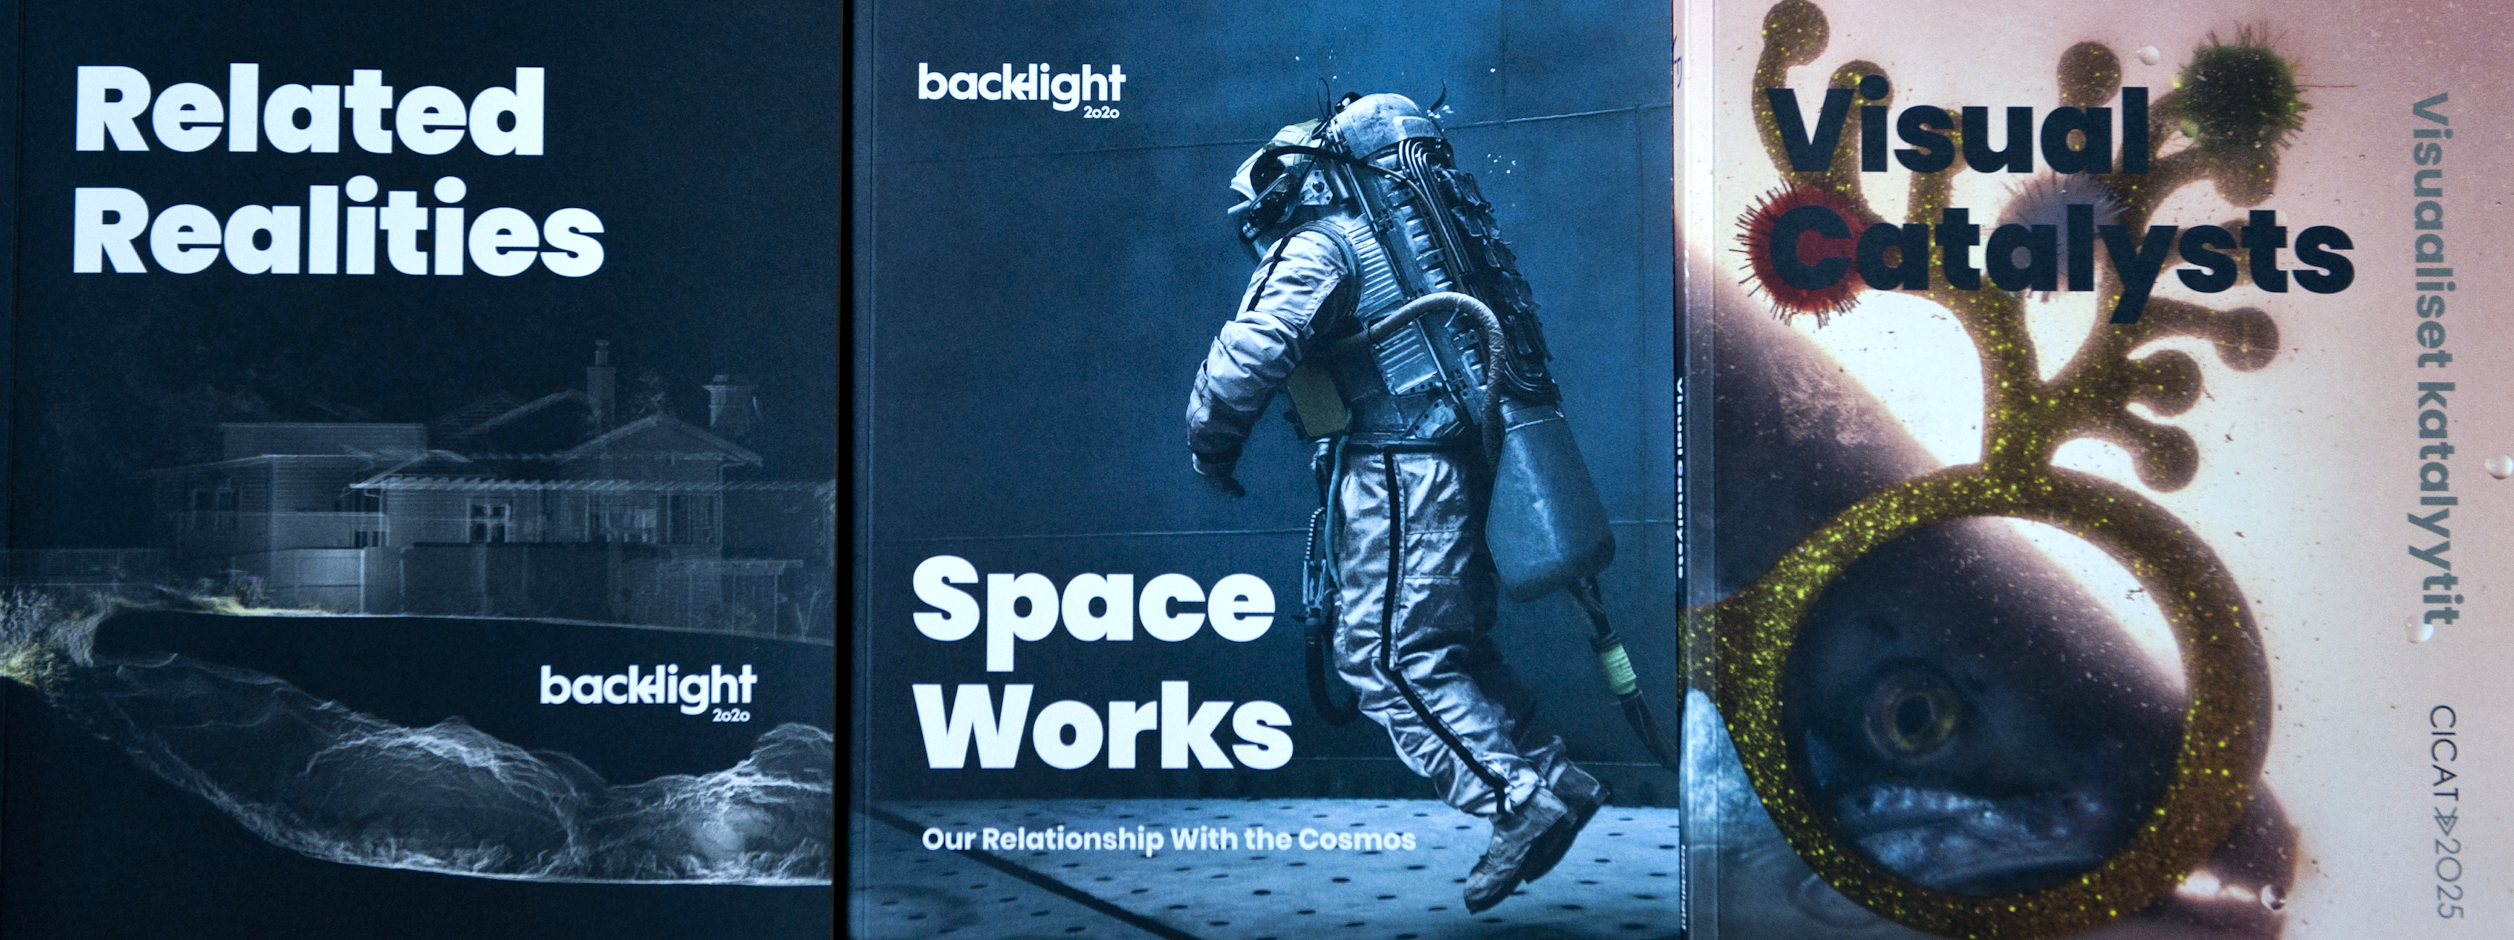 All the books of Backlight2020 Photo Festival trilogy have been published!